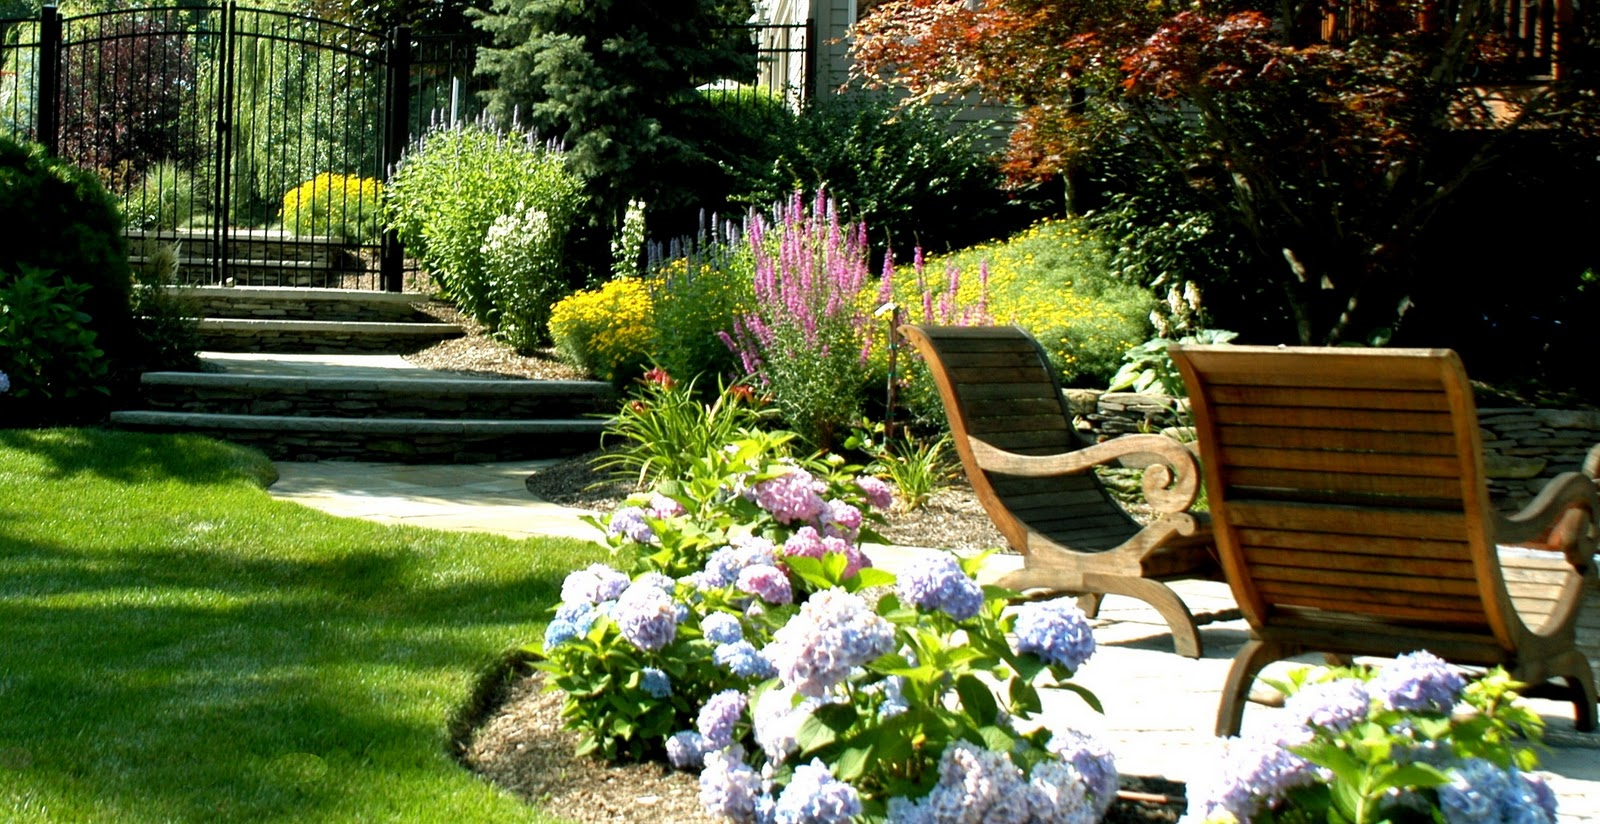 Hightechlandscapes new jersey landscape design for Garden design 2015